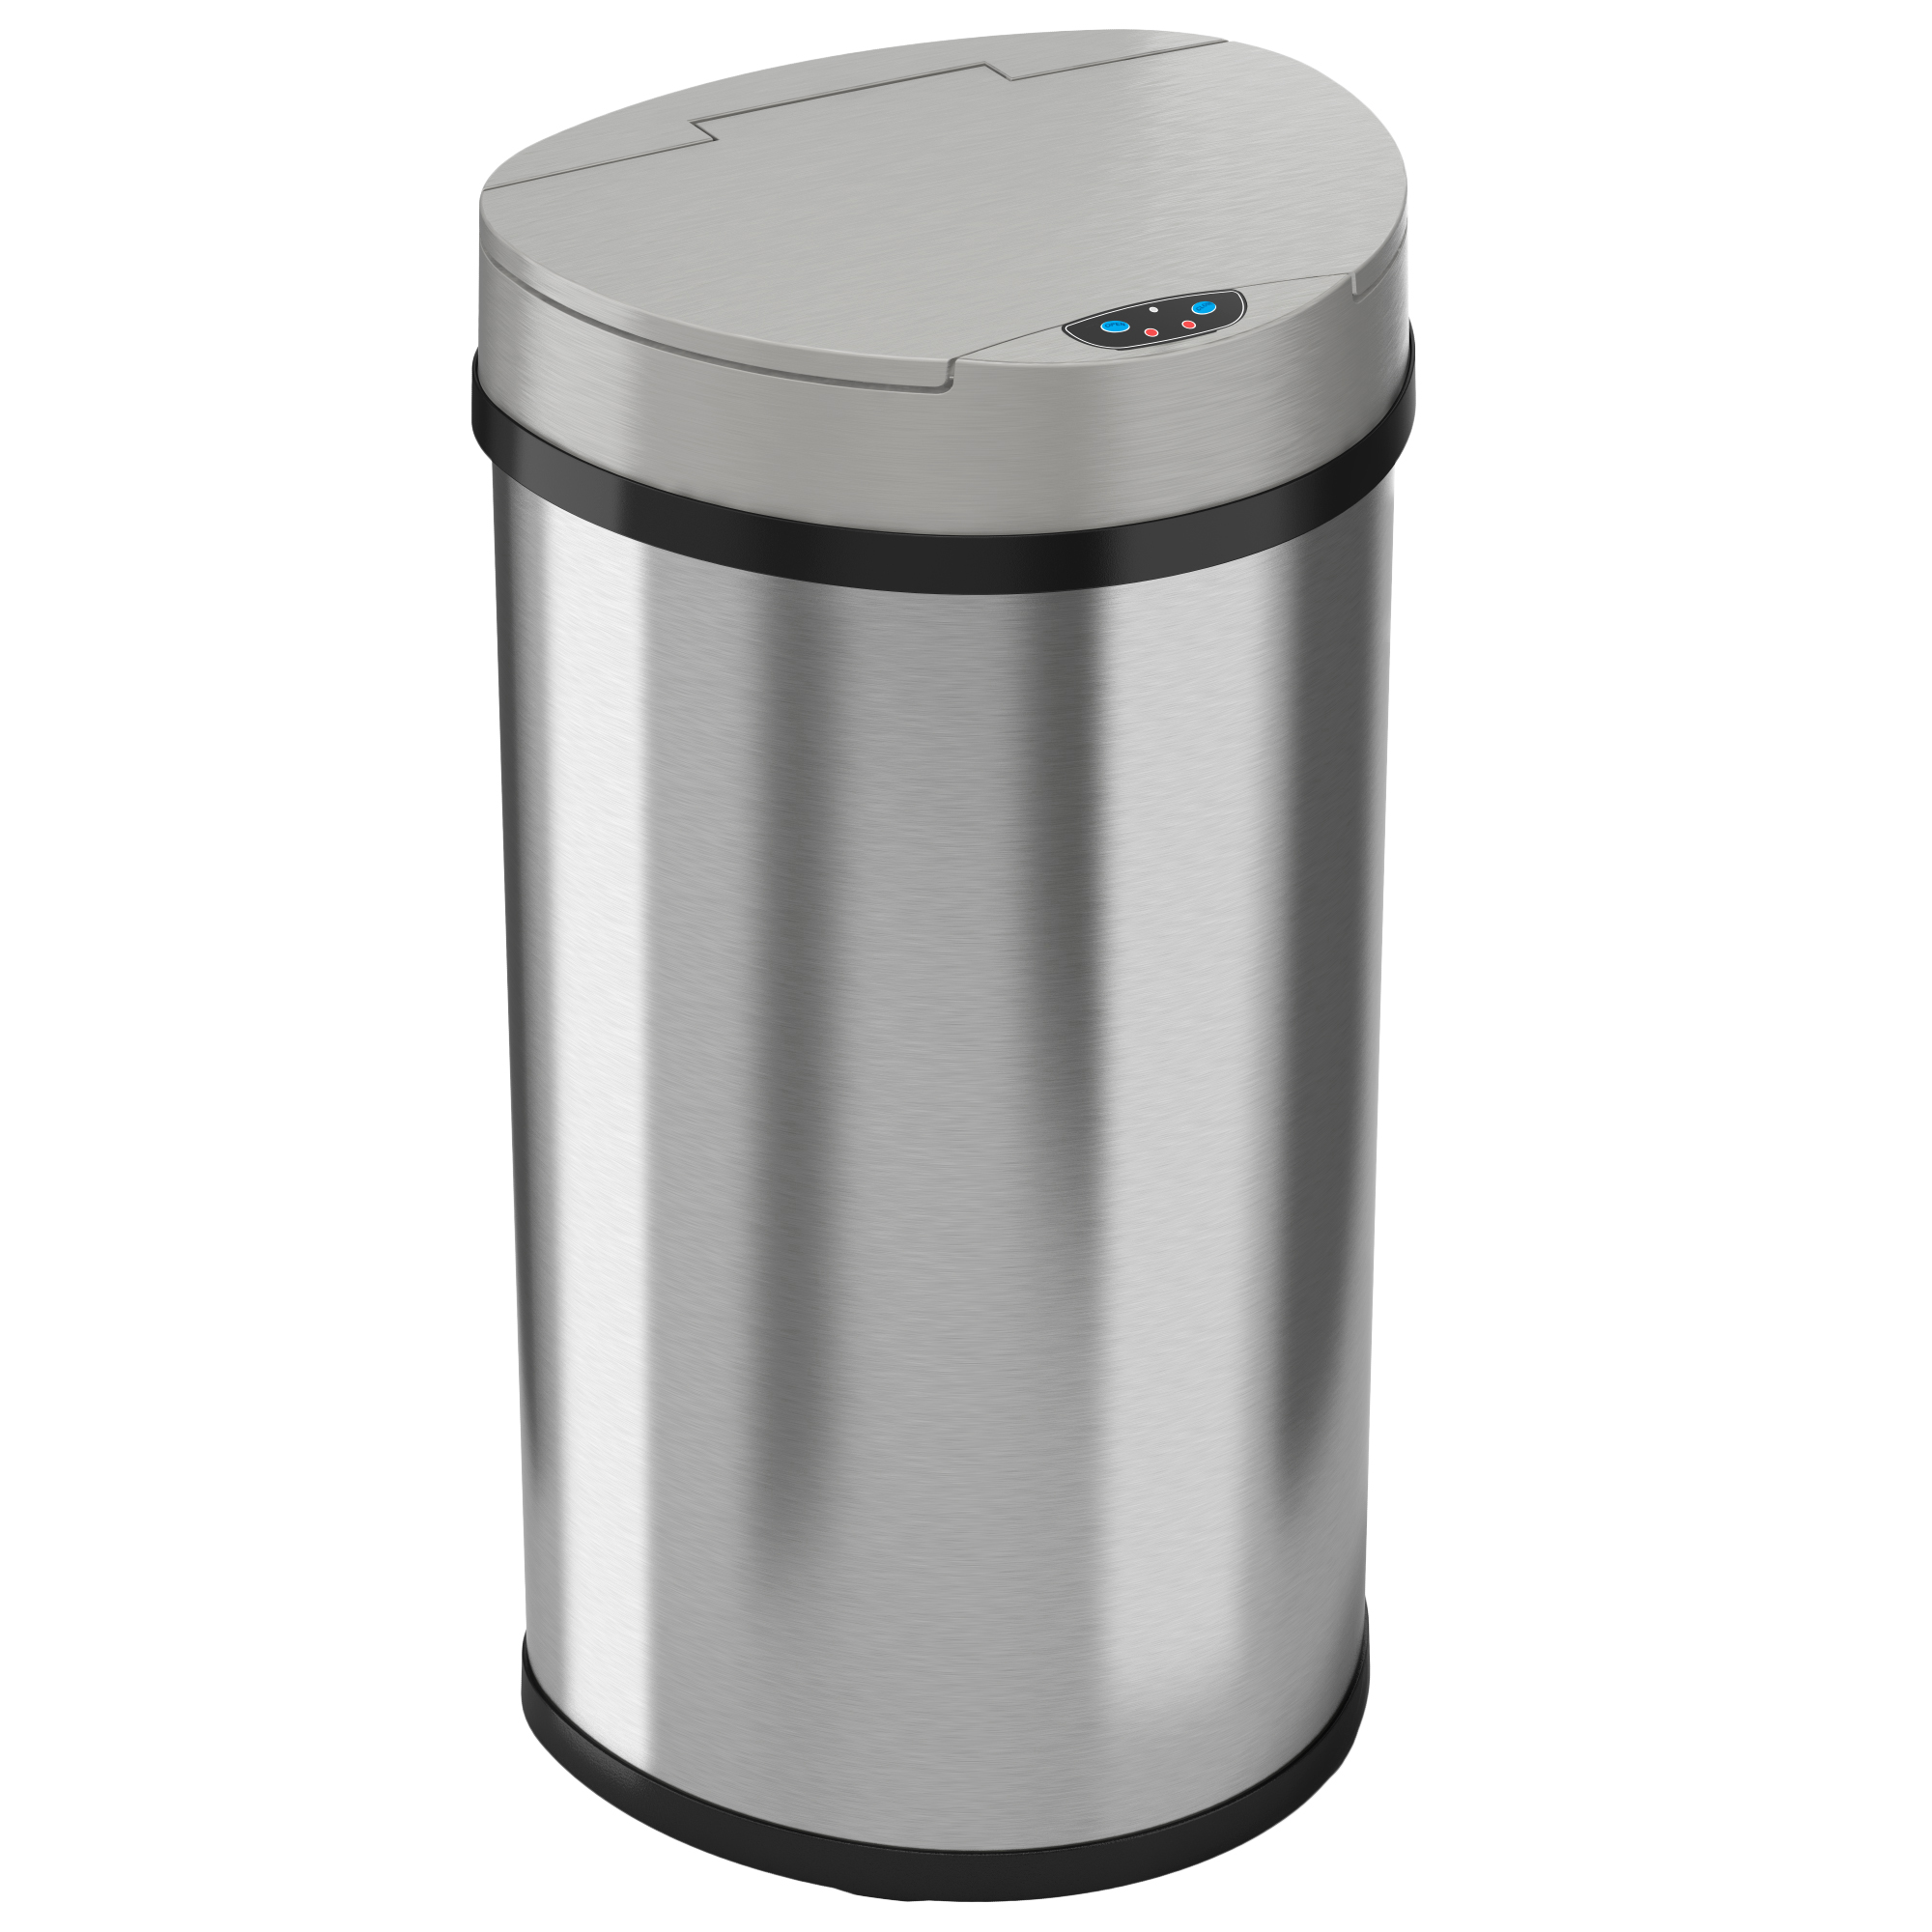 iTouchless 13 Gallon Semi-Round Extra-Wide Opening Touchless Trash Can HX